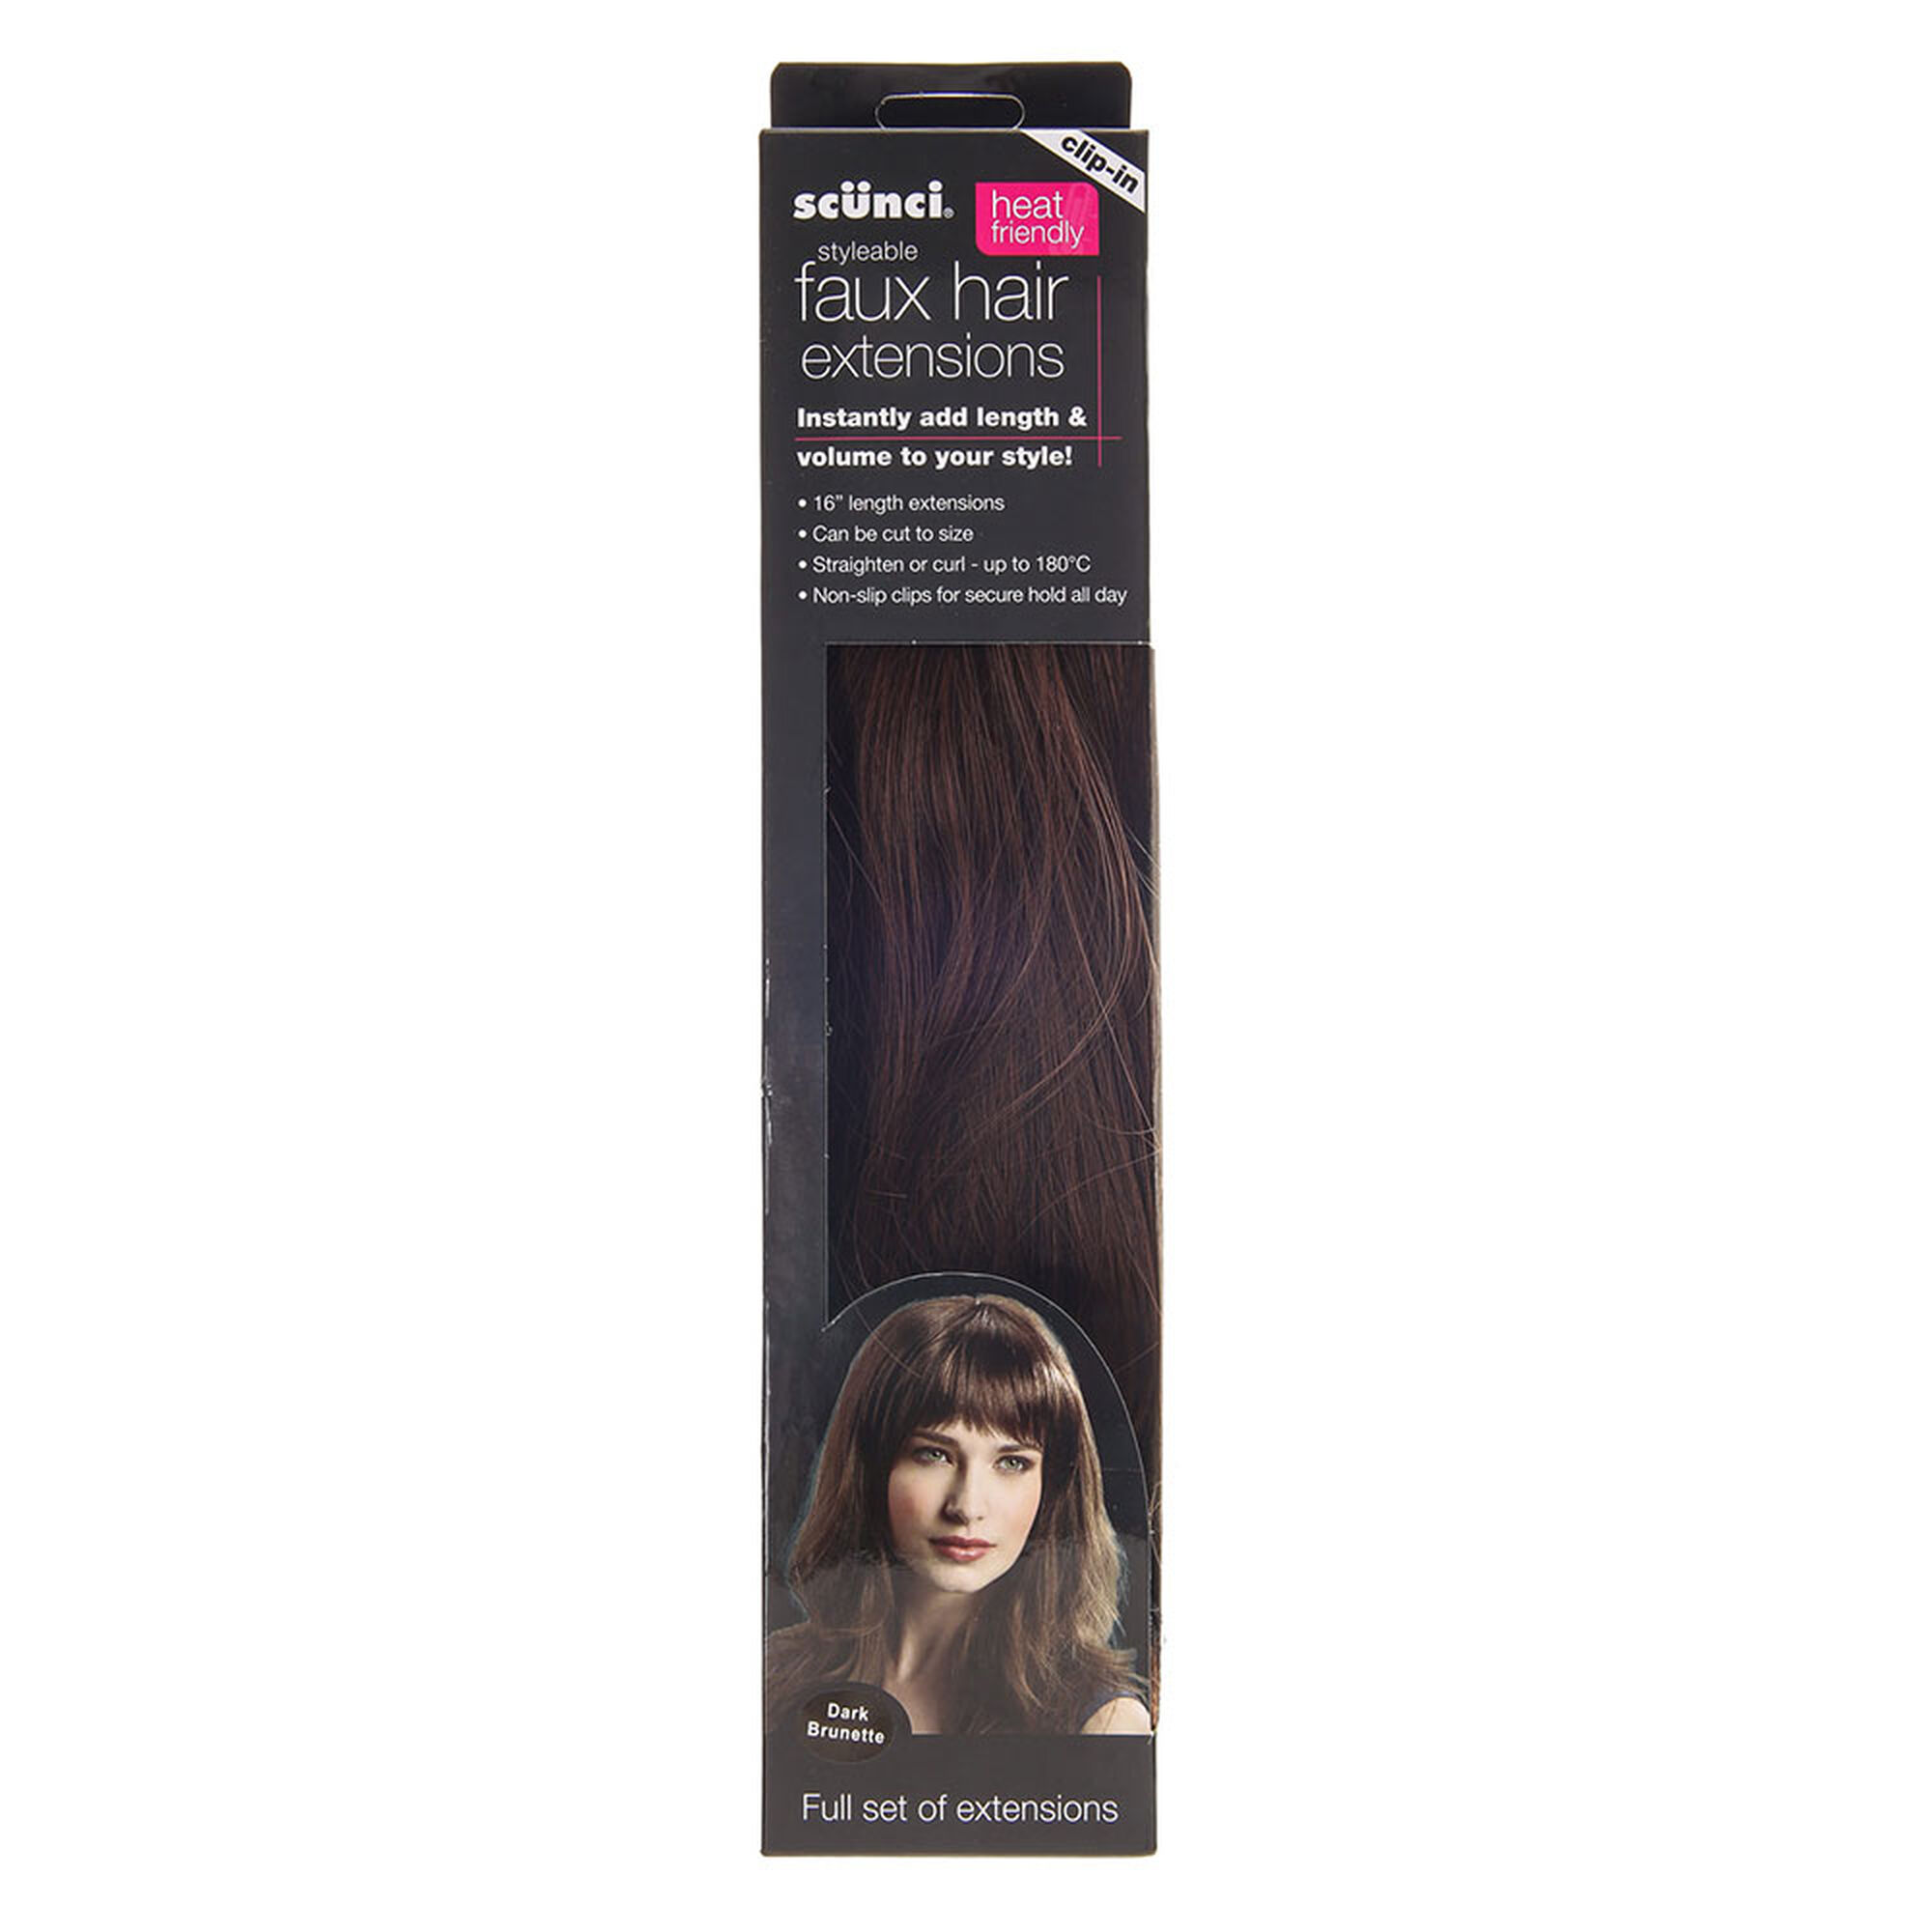 Fake hair clip ins extensions wigs claires scunci dark brown faux hair extensions pmusecretfo Image collections